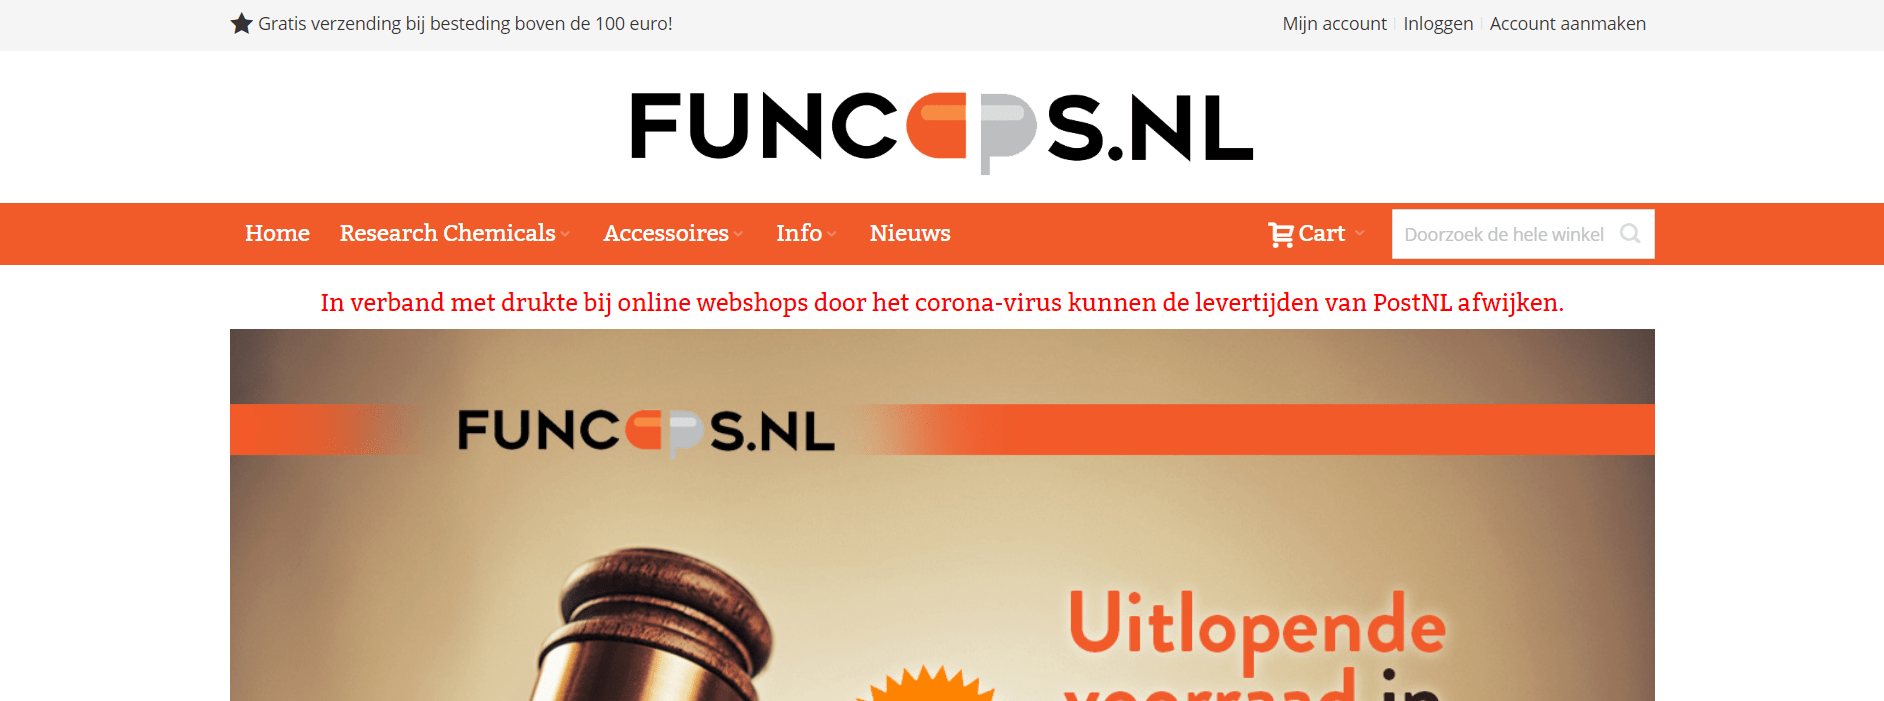 research chemicals website Funcaps.nl